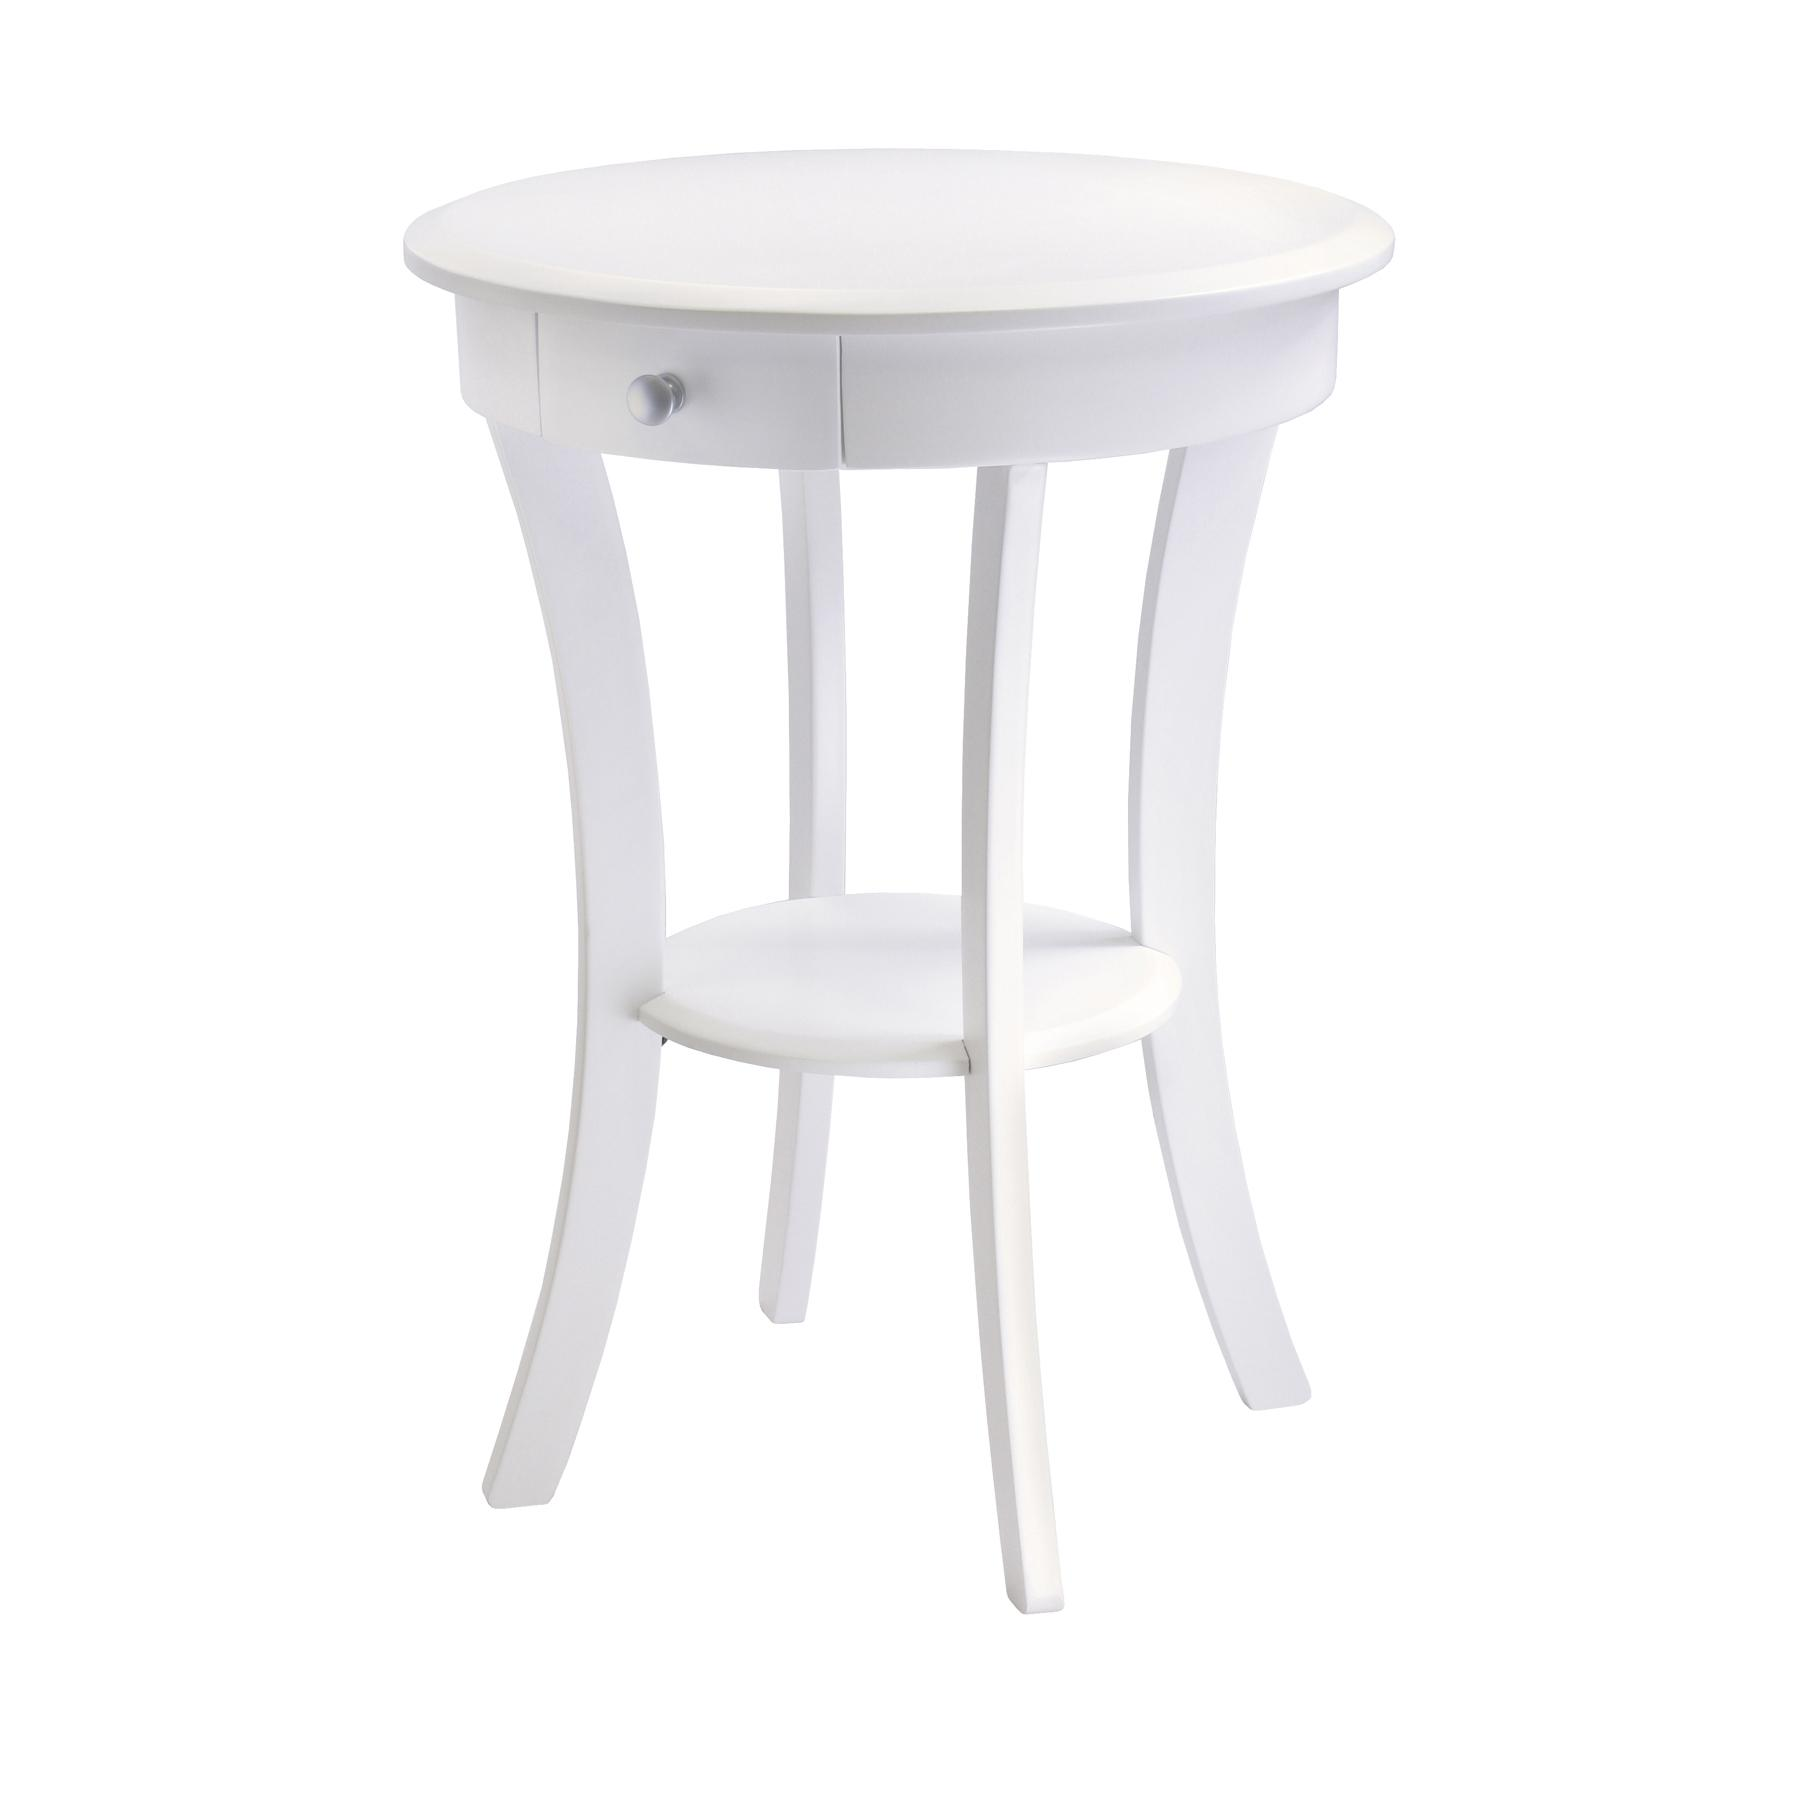 white round accent table loris decoration neelan view larger large oriental lamps tall pub style small farmhouse dining circular patio furniture covers grey side lamp coastal